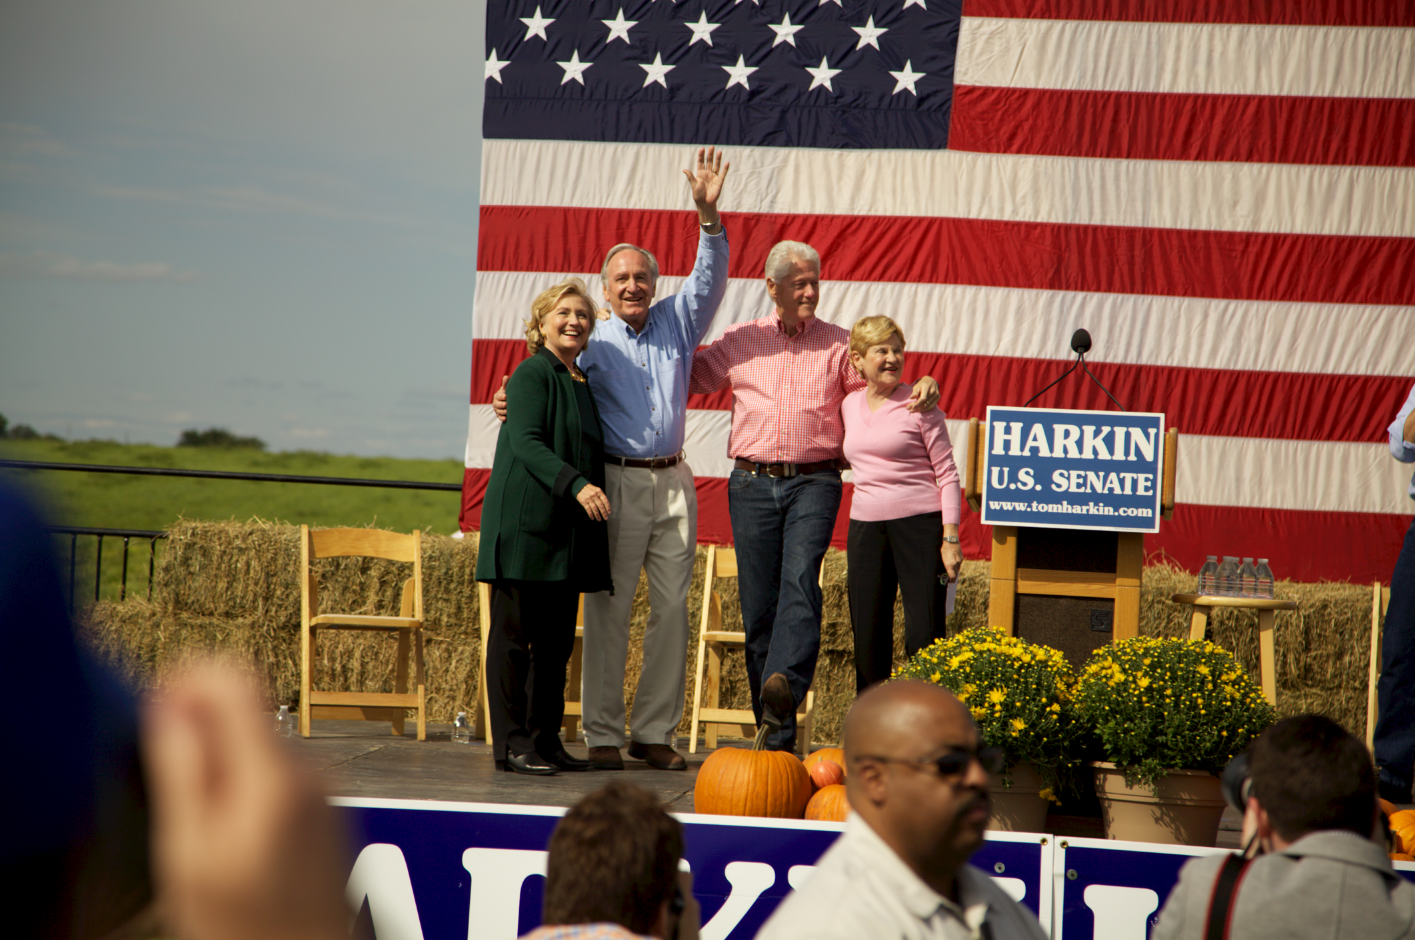 The main event, Hillary, Senator Harkin, Bill, and Mrs. Harkin.  Everyone wanted Hillary to announce, but she didn't.  In fact, her speech really didn't say anything.  Bill was as funny and charming as ever.  The man's got people skills.